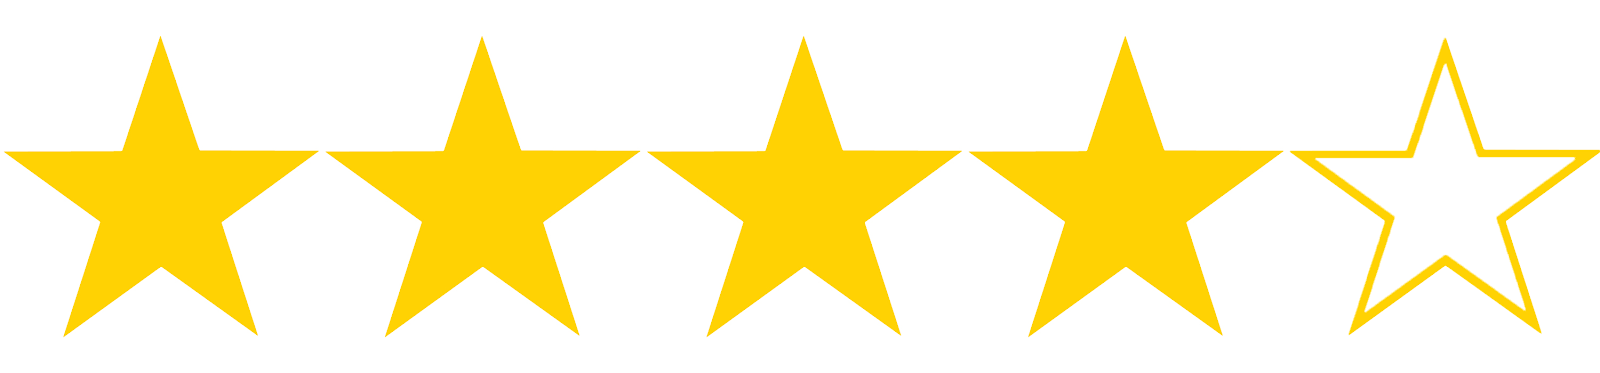 Image result for 4 star